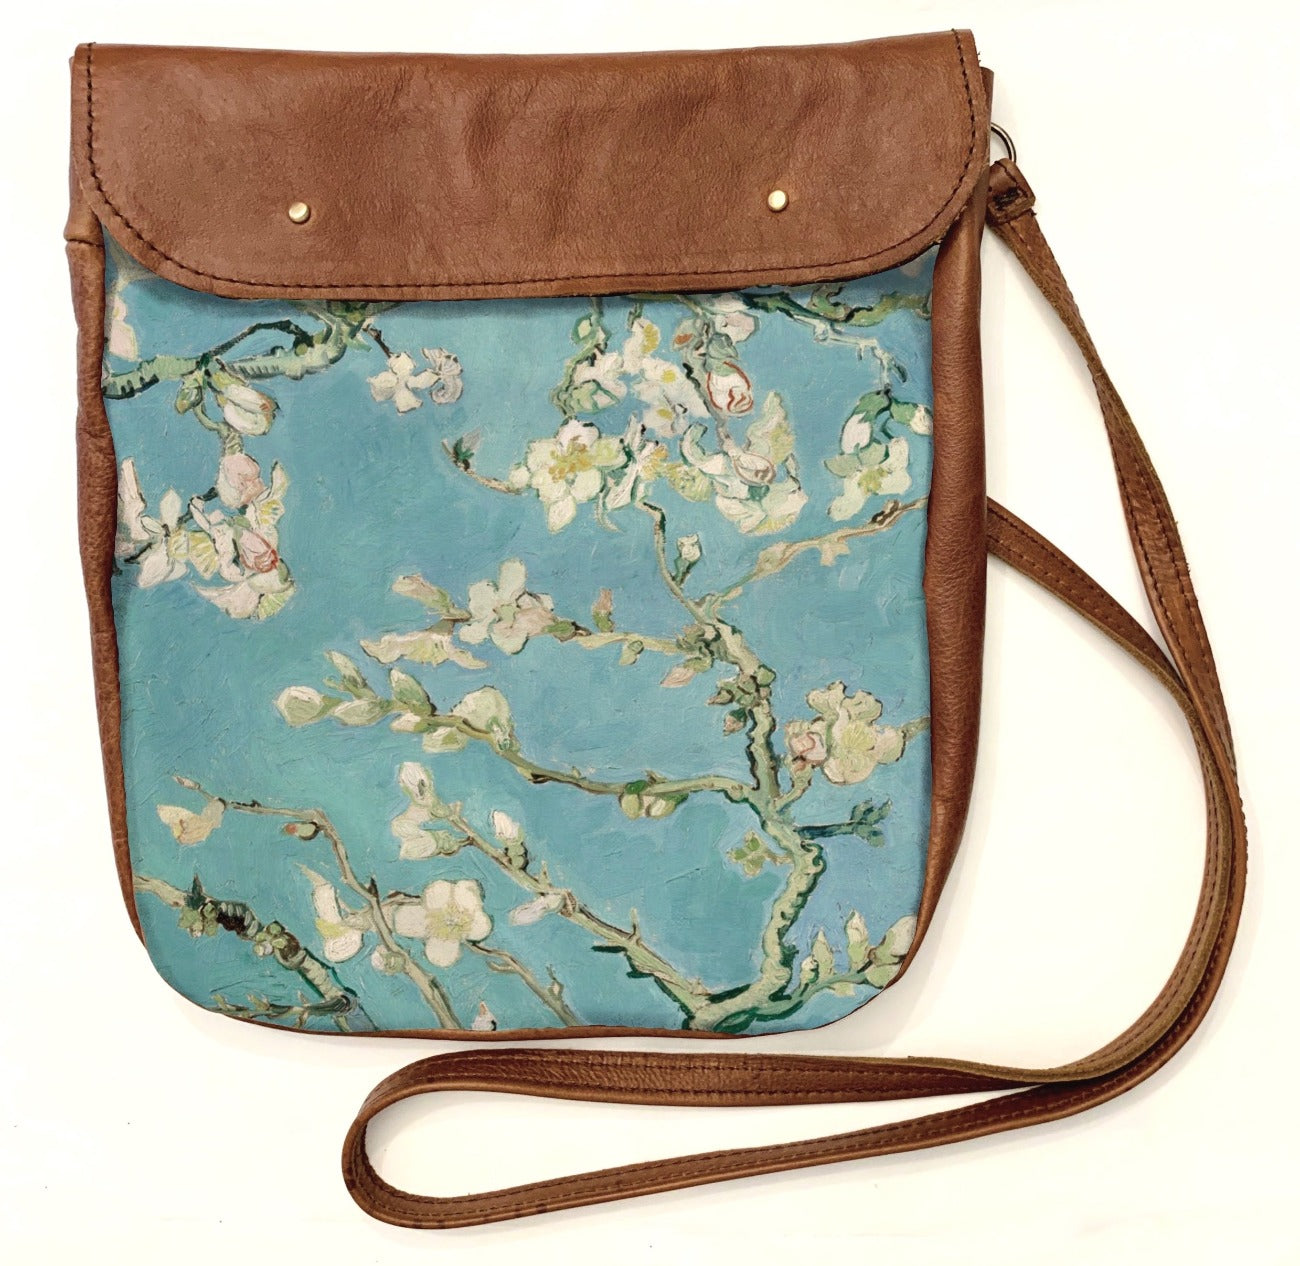 Crossover bag Van Gogh Almond Blossoms